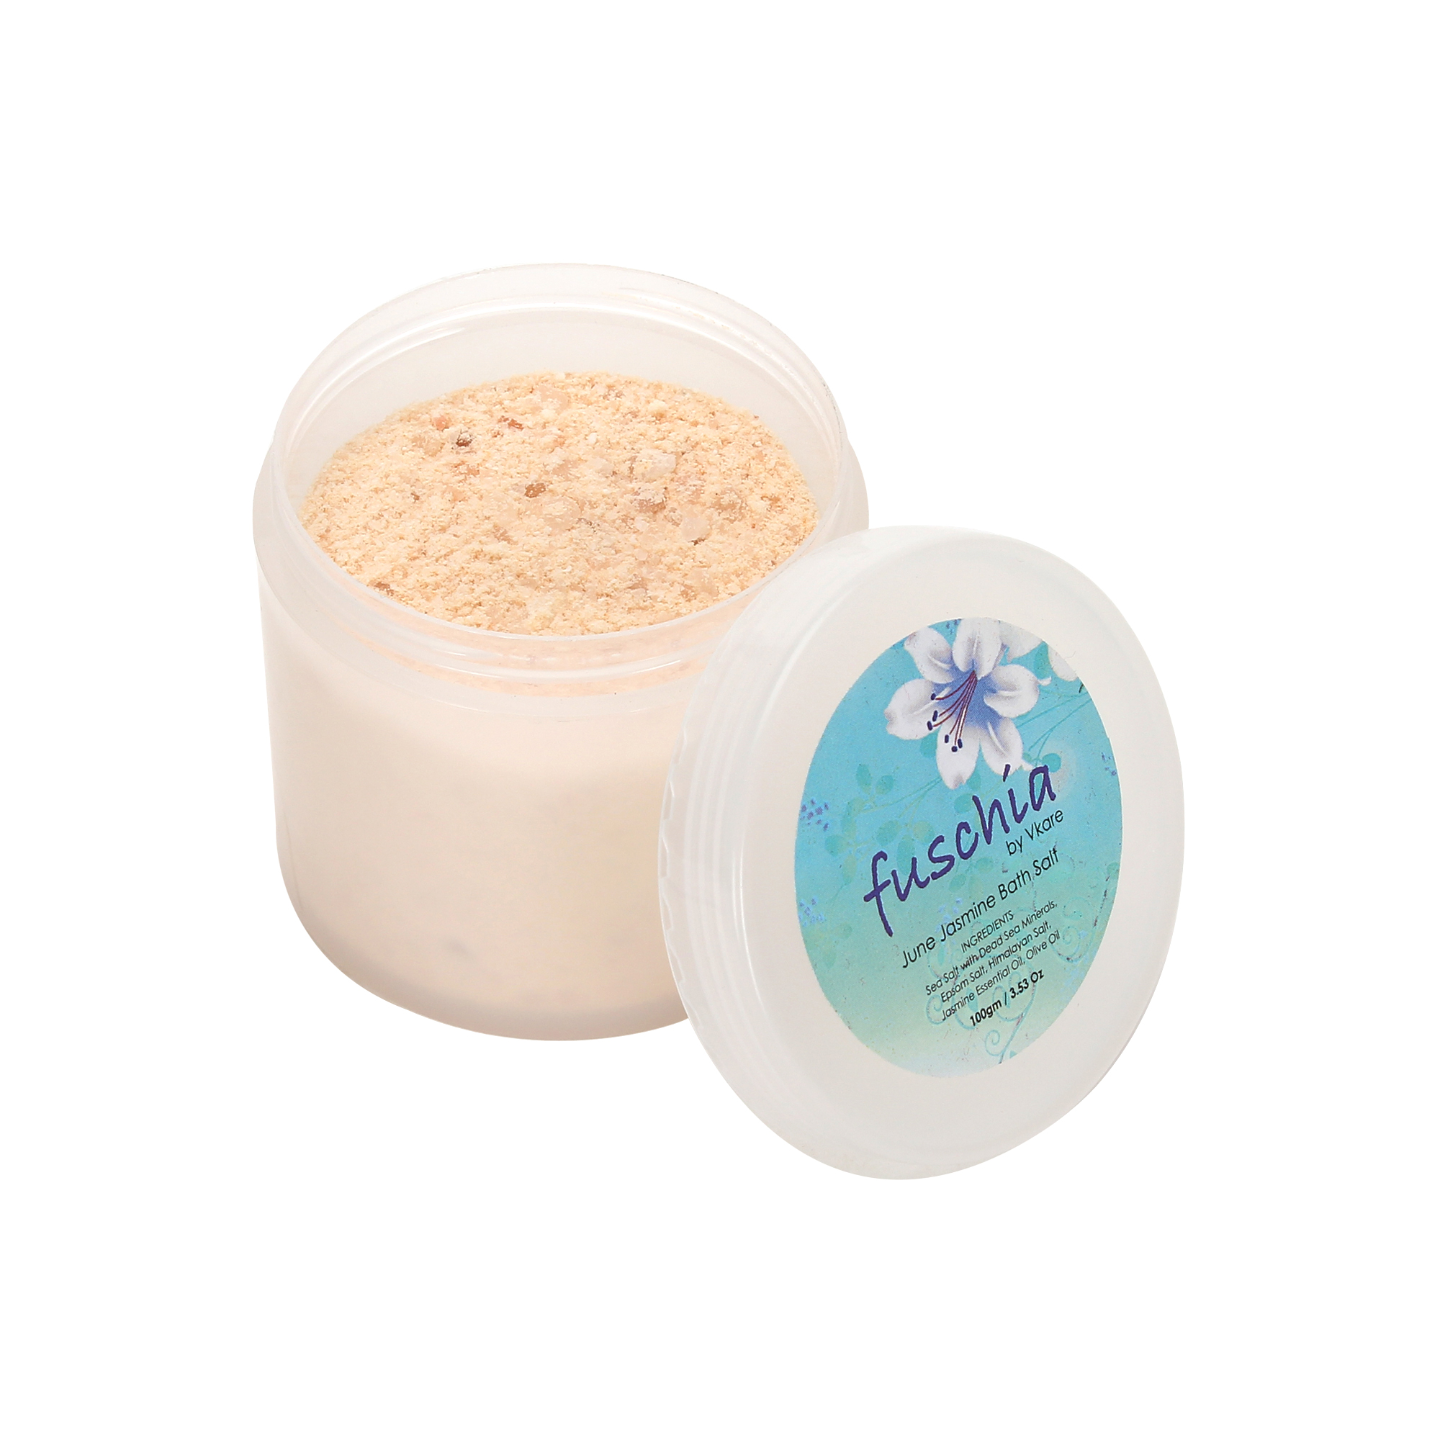 Fuschia - June Jasmine Bath Salt - 100 gms